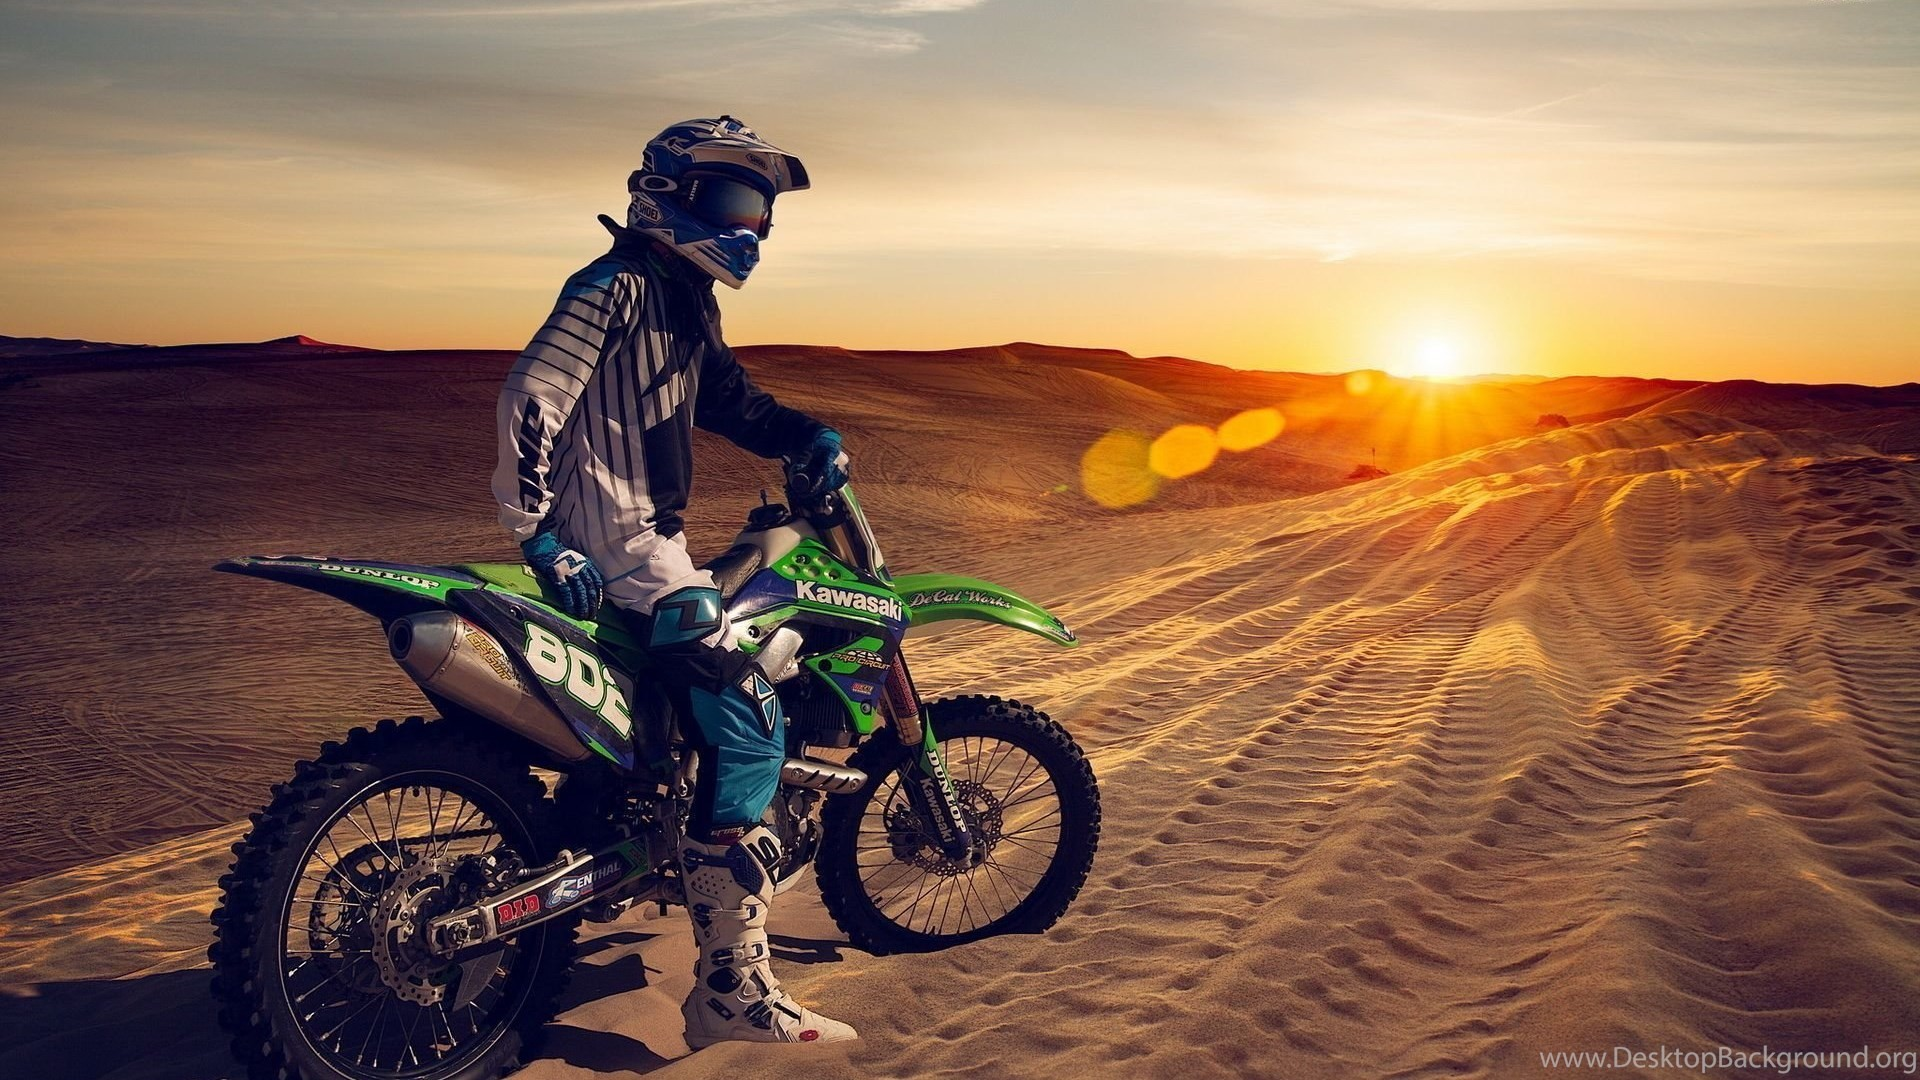 Dirt Bike Wallpaper For Desktop 69 Images